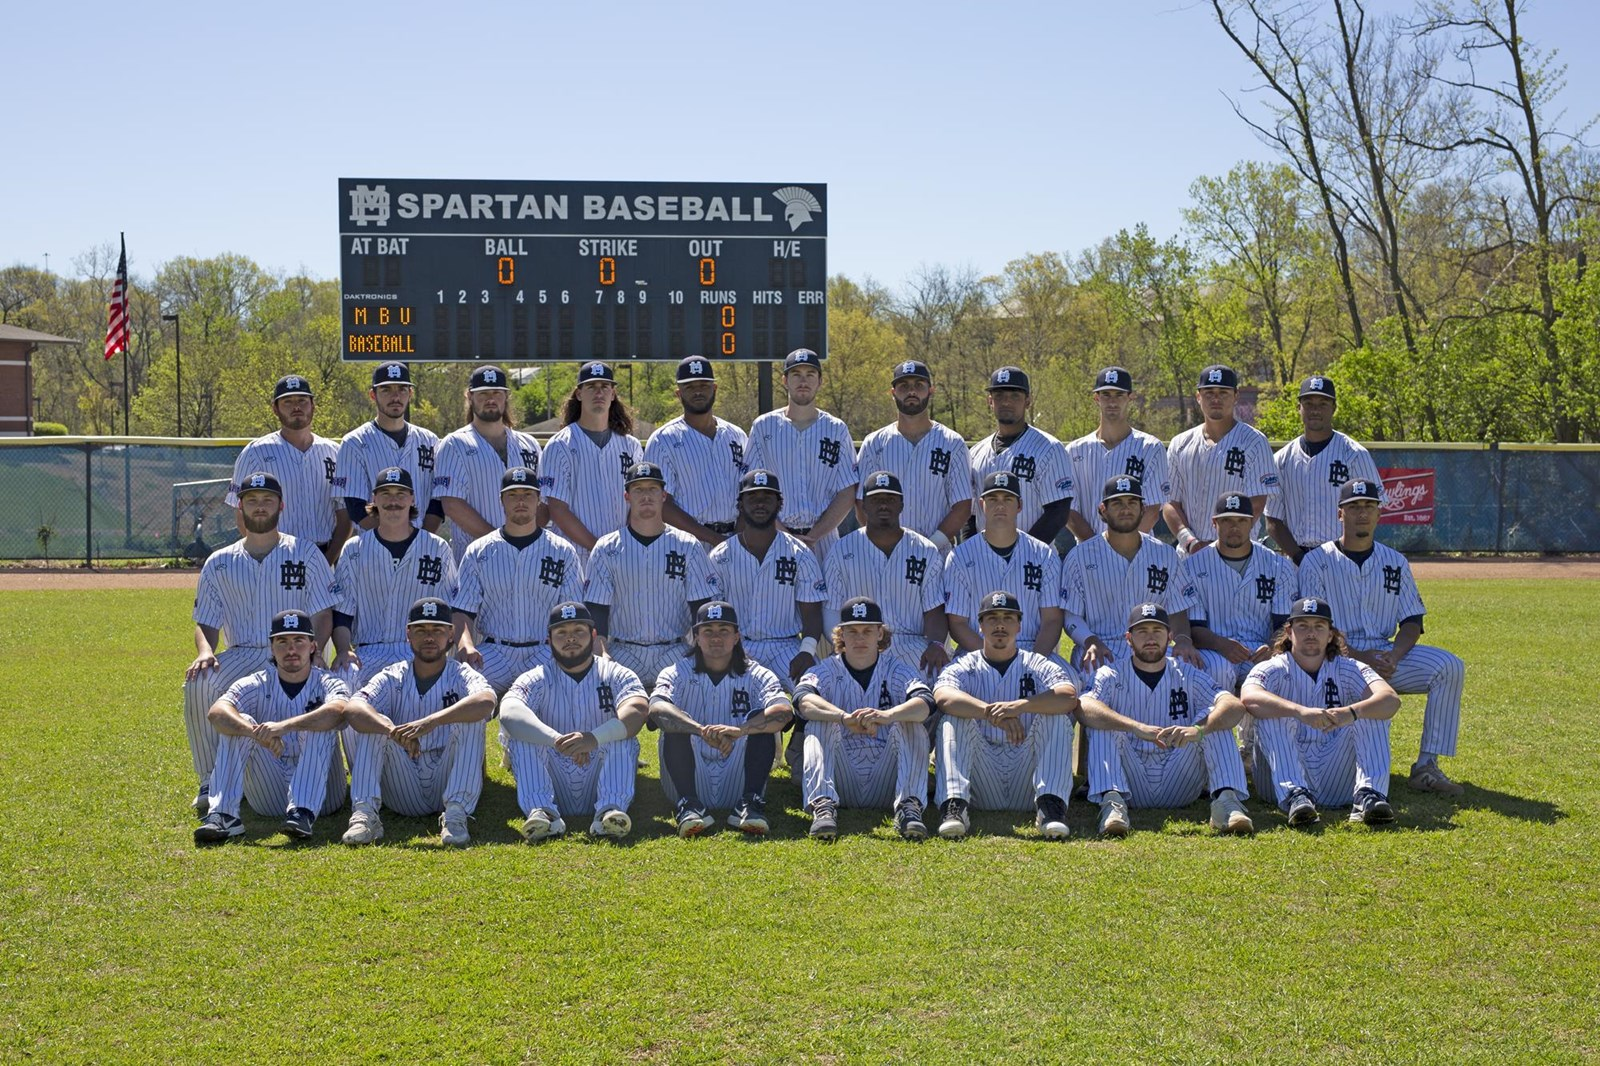 2019 Baseball Roster - MBU Athletics